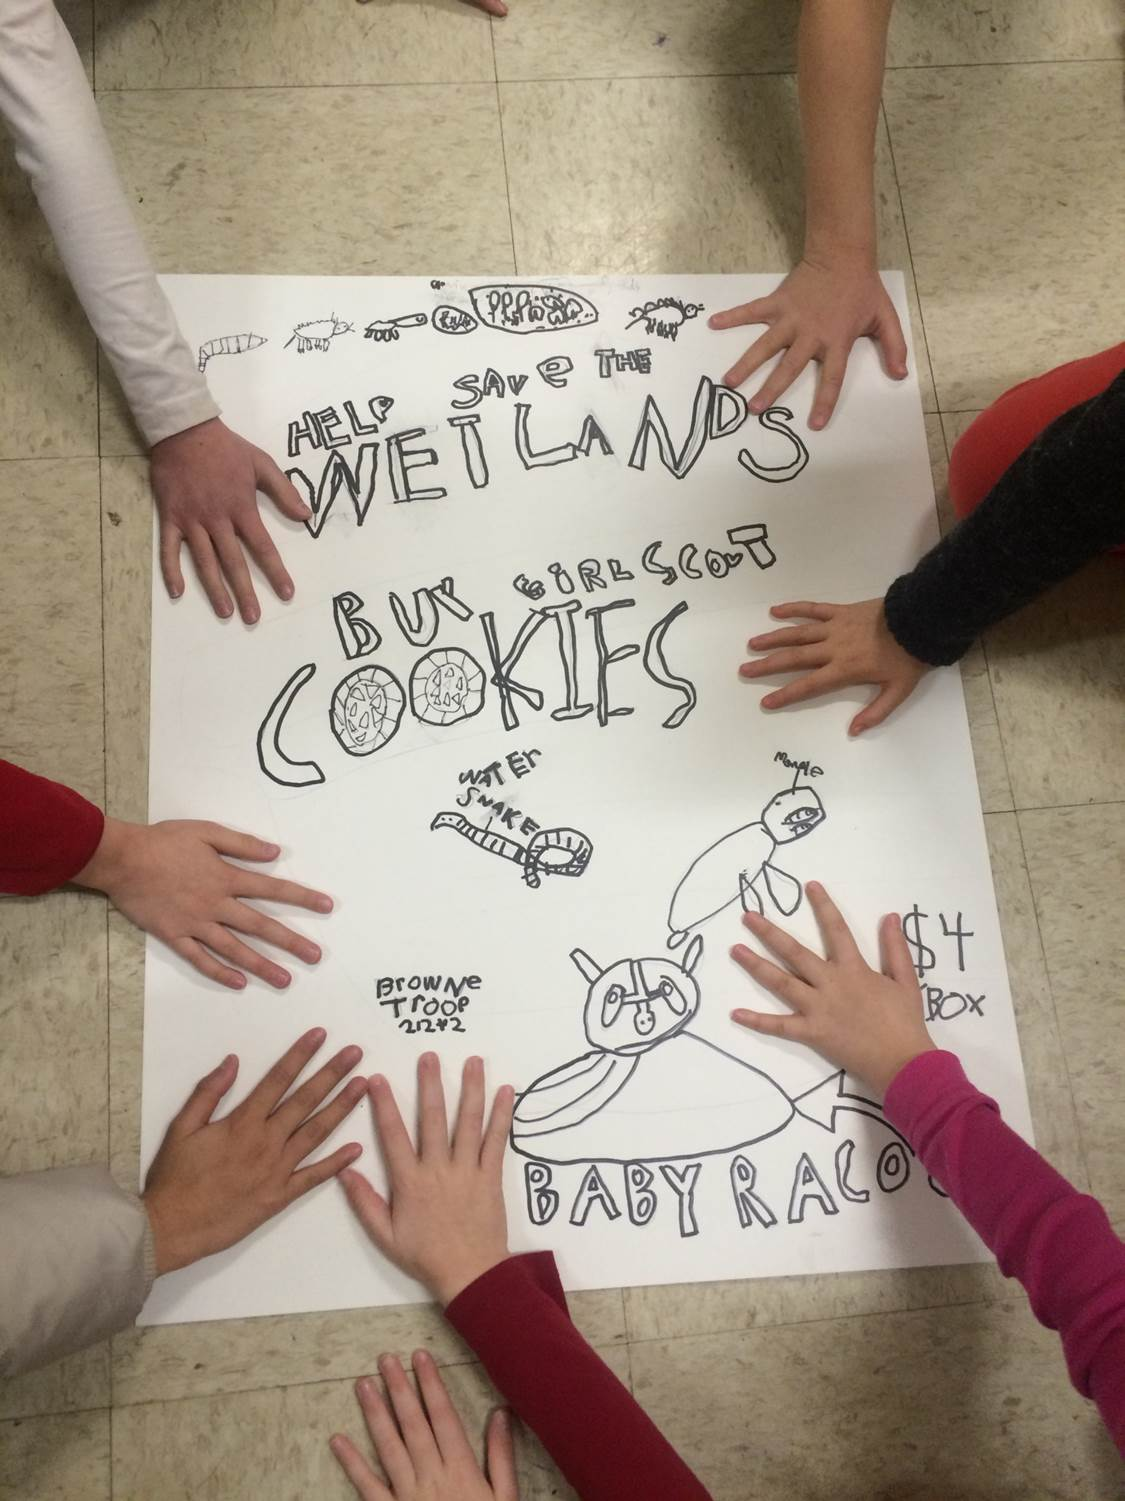 The Rainbow Troop displays one of the many posters they created for their cookie sale booths.